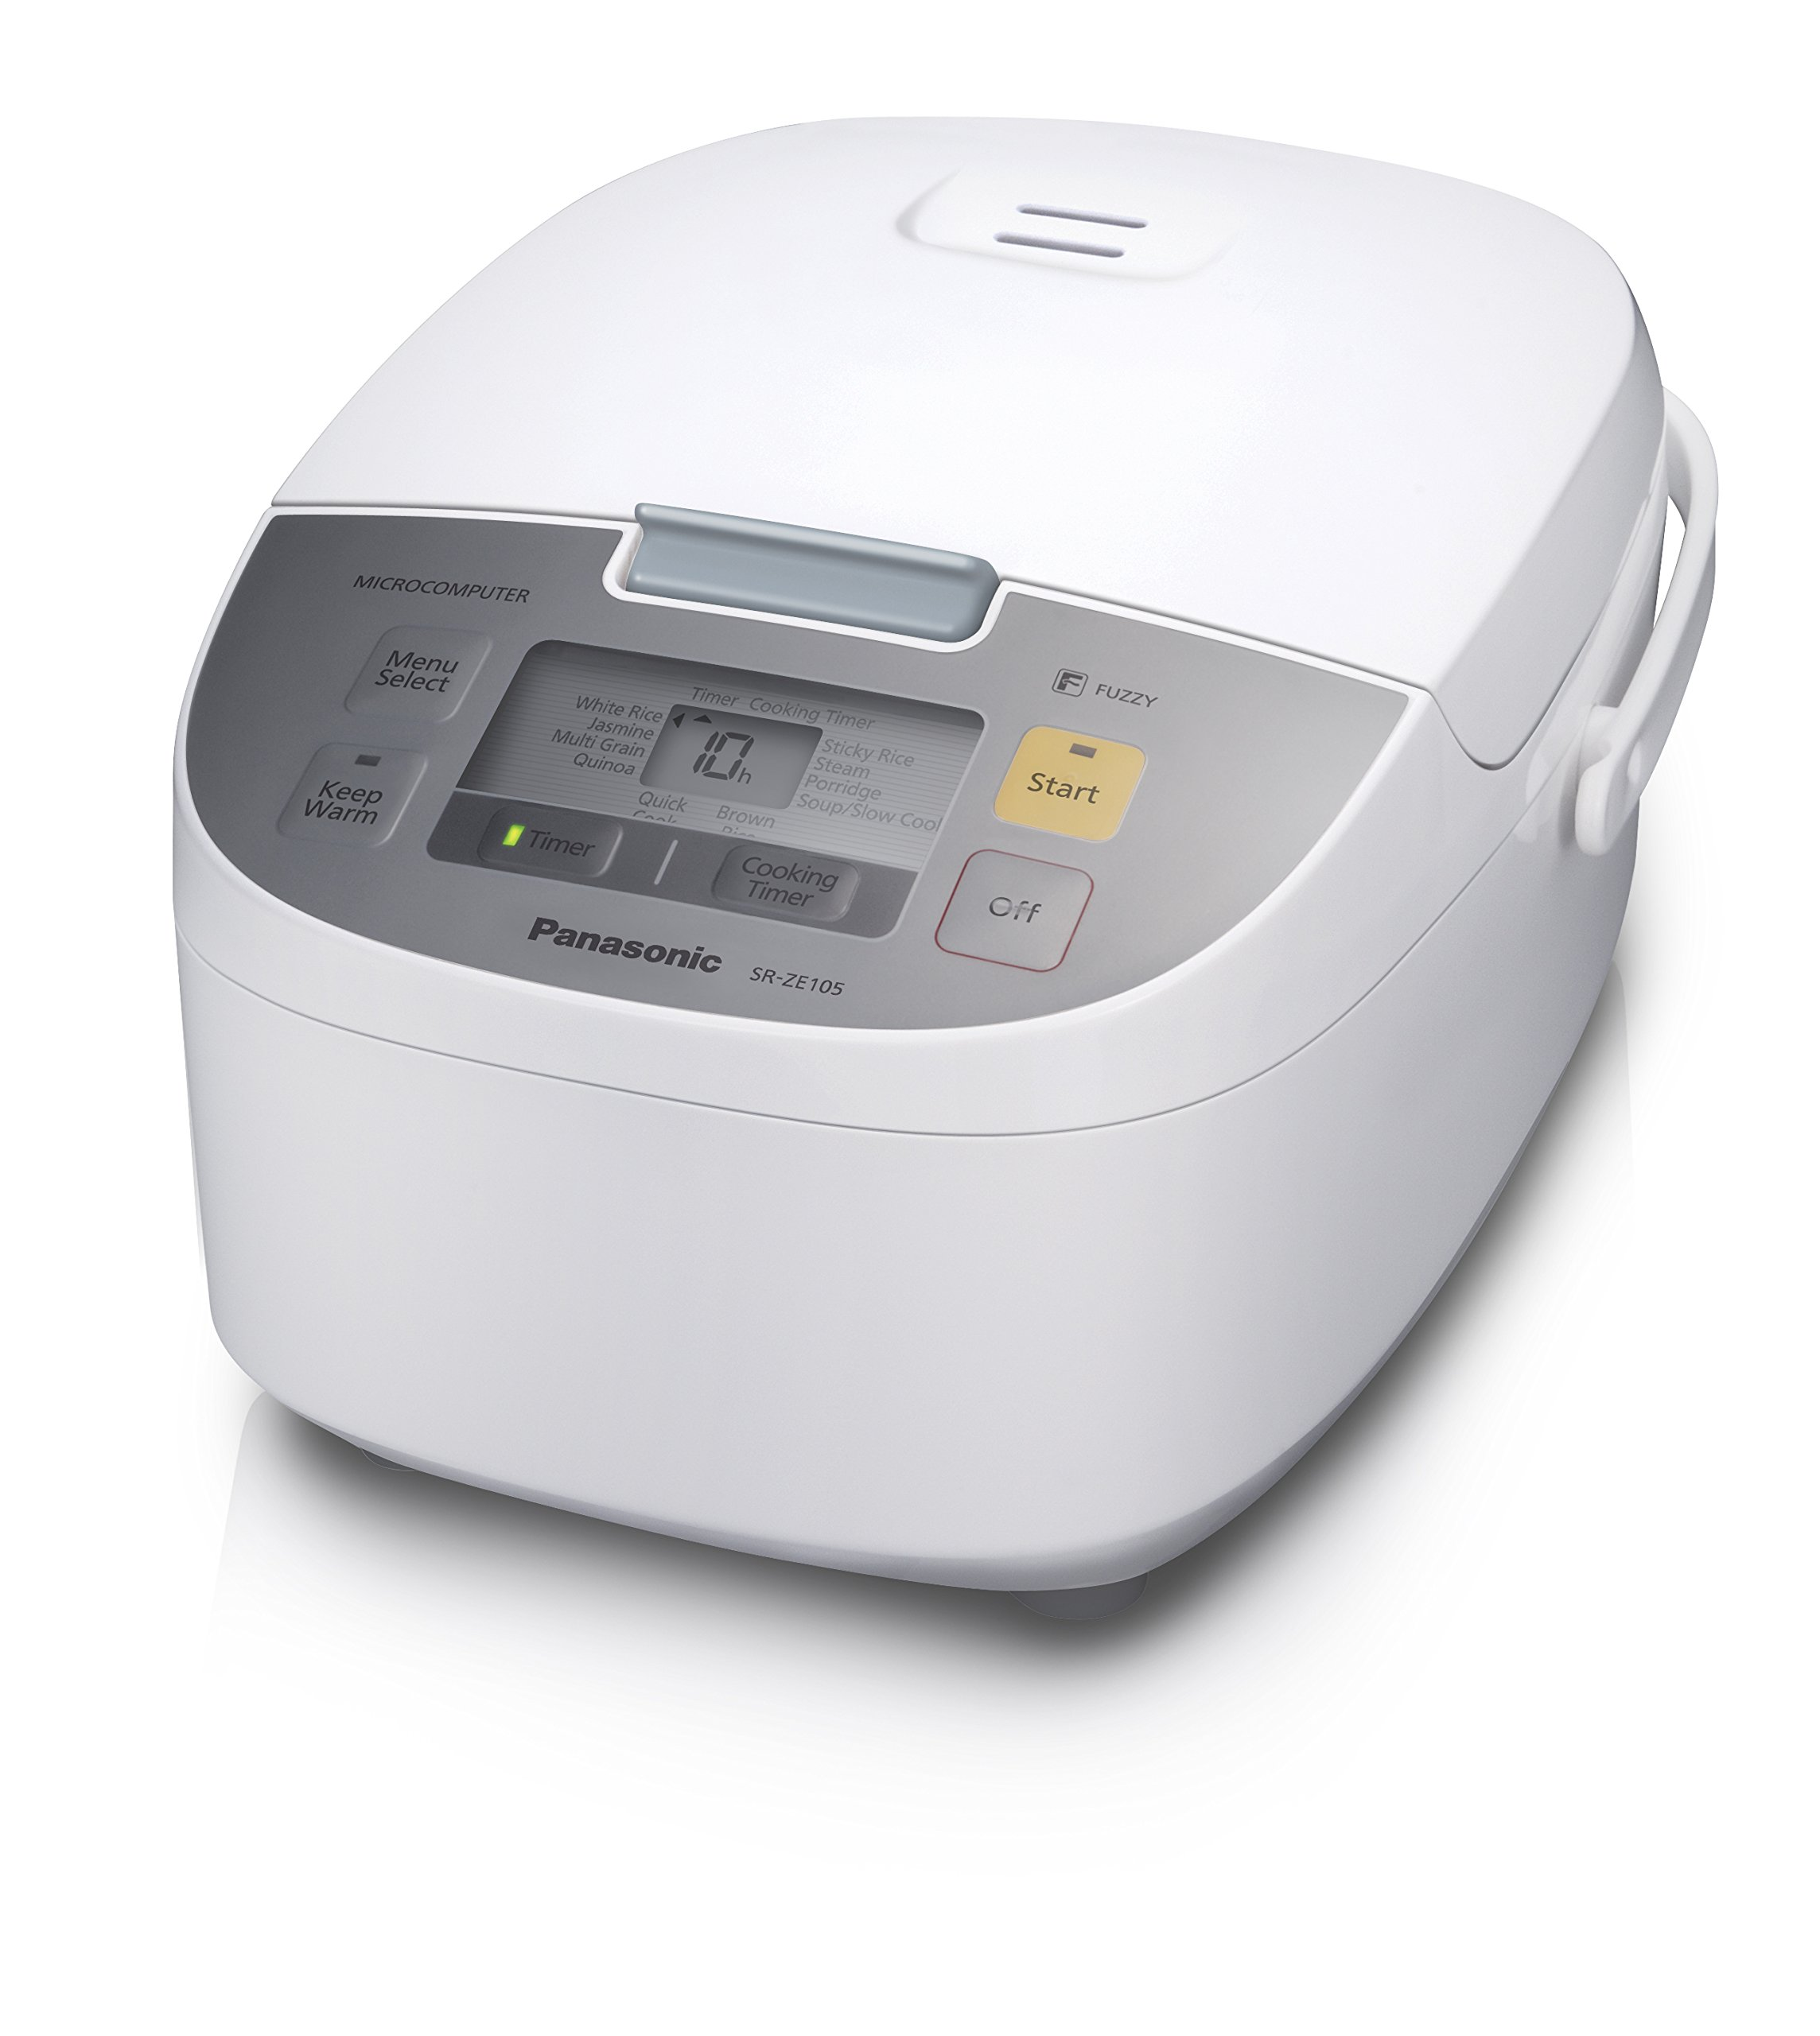 Panasonic SR-ZE105 Rice Cooker & Multi-Cooker, 10 cups cooked/5 cups uncooked, White